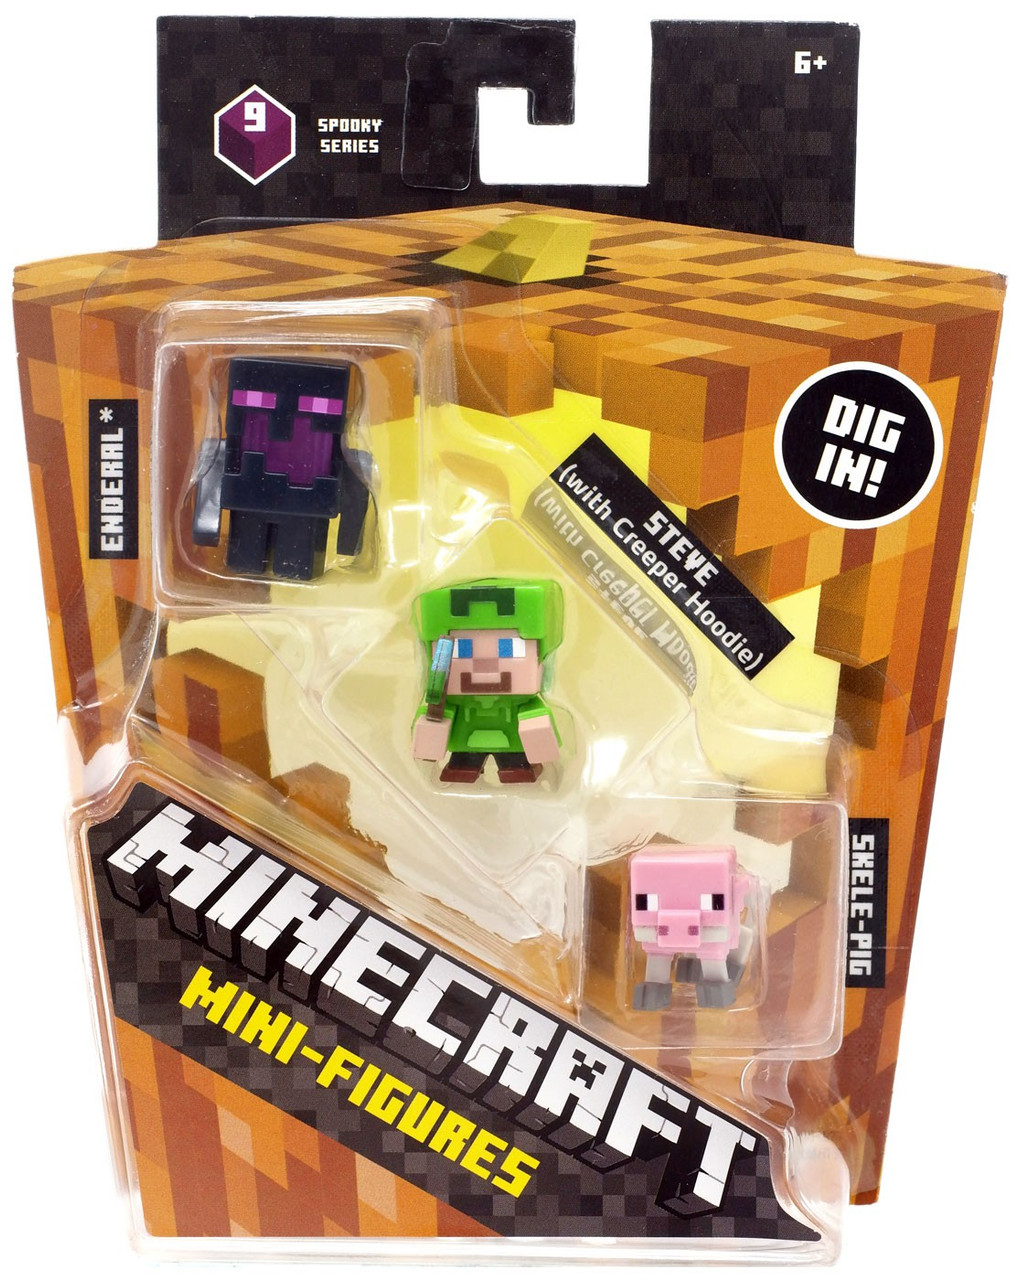 Minecraft Toys And Mini Figures For Kids : Minecraft spooky halloween series steve with hoodie